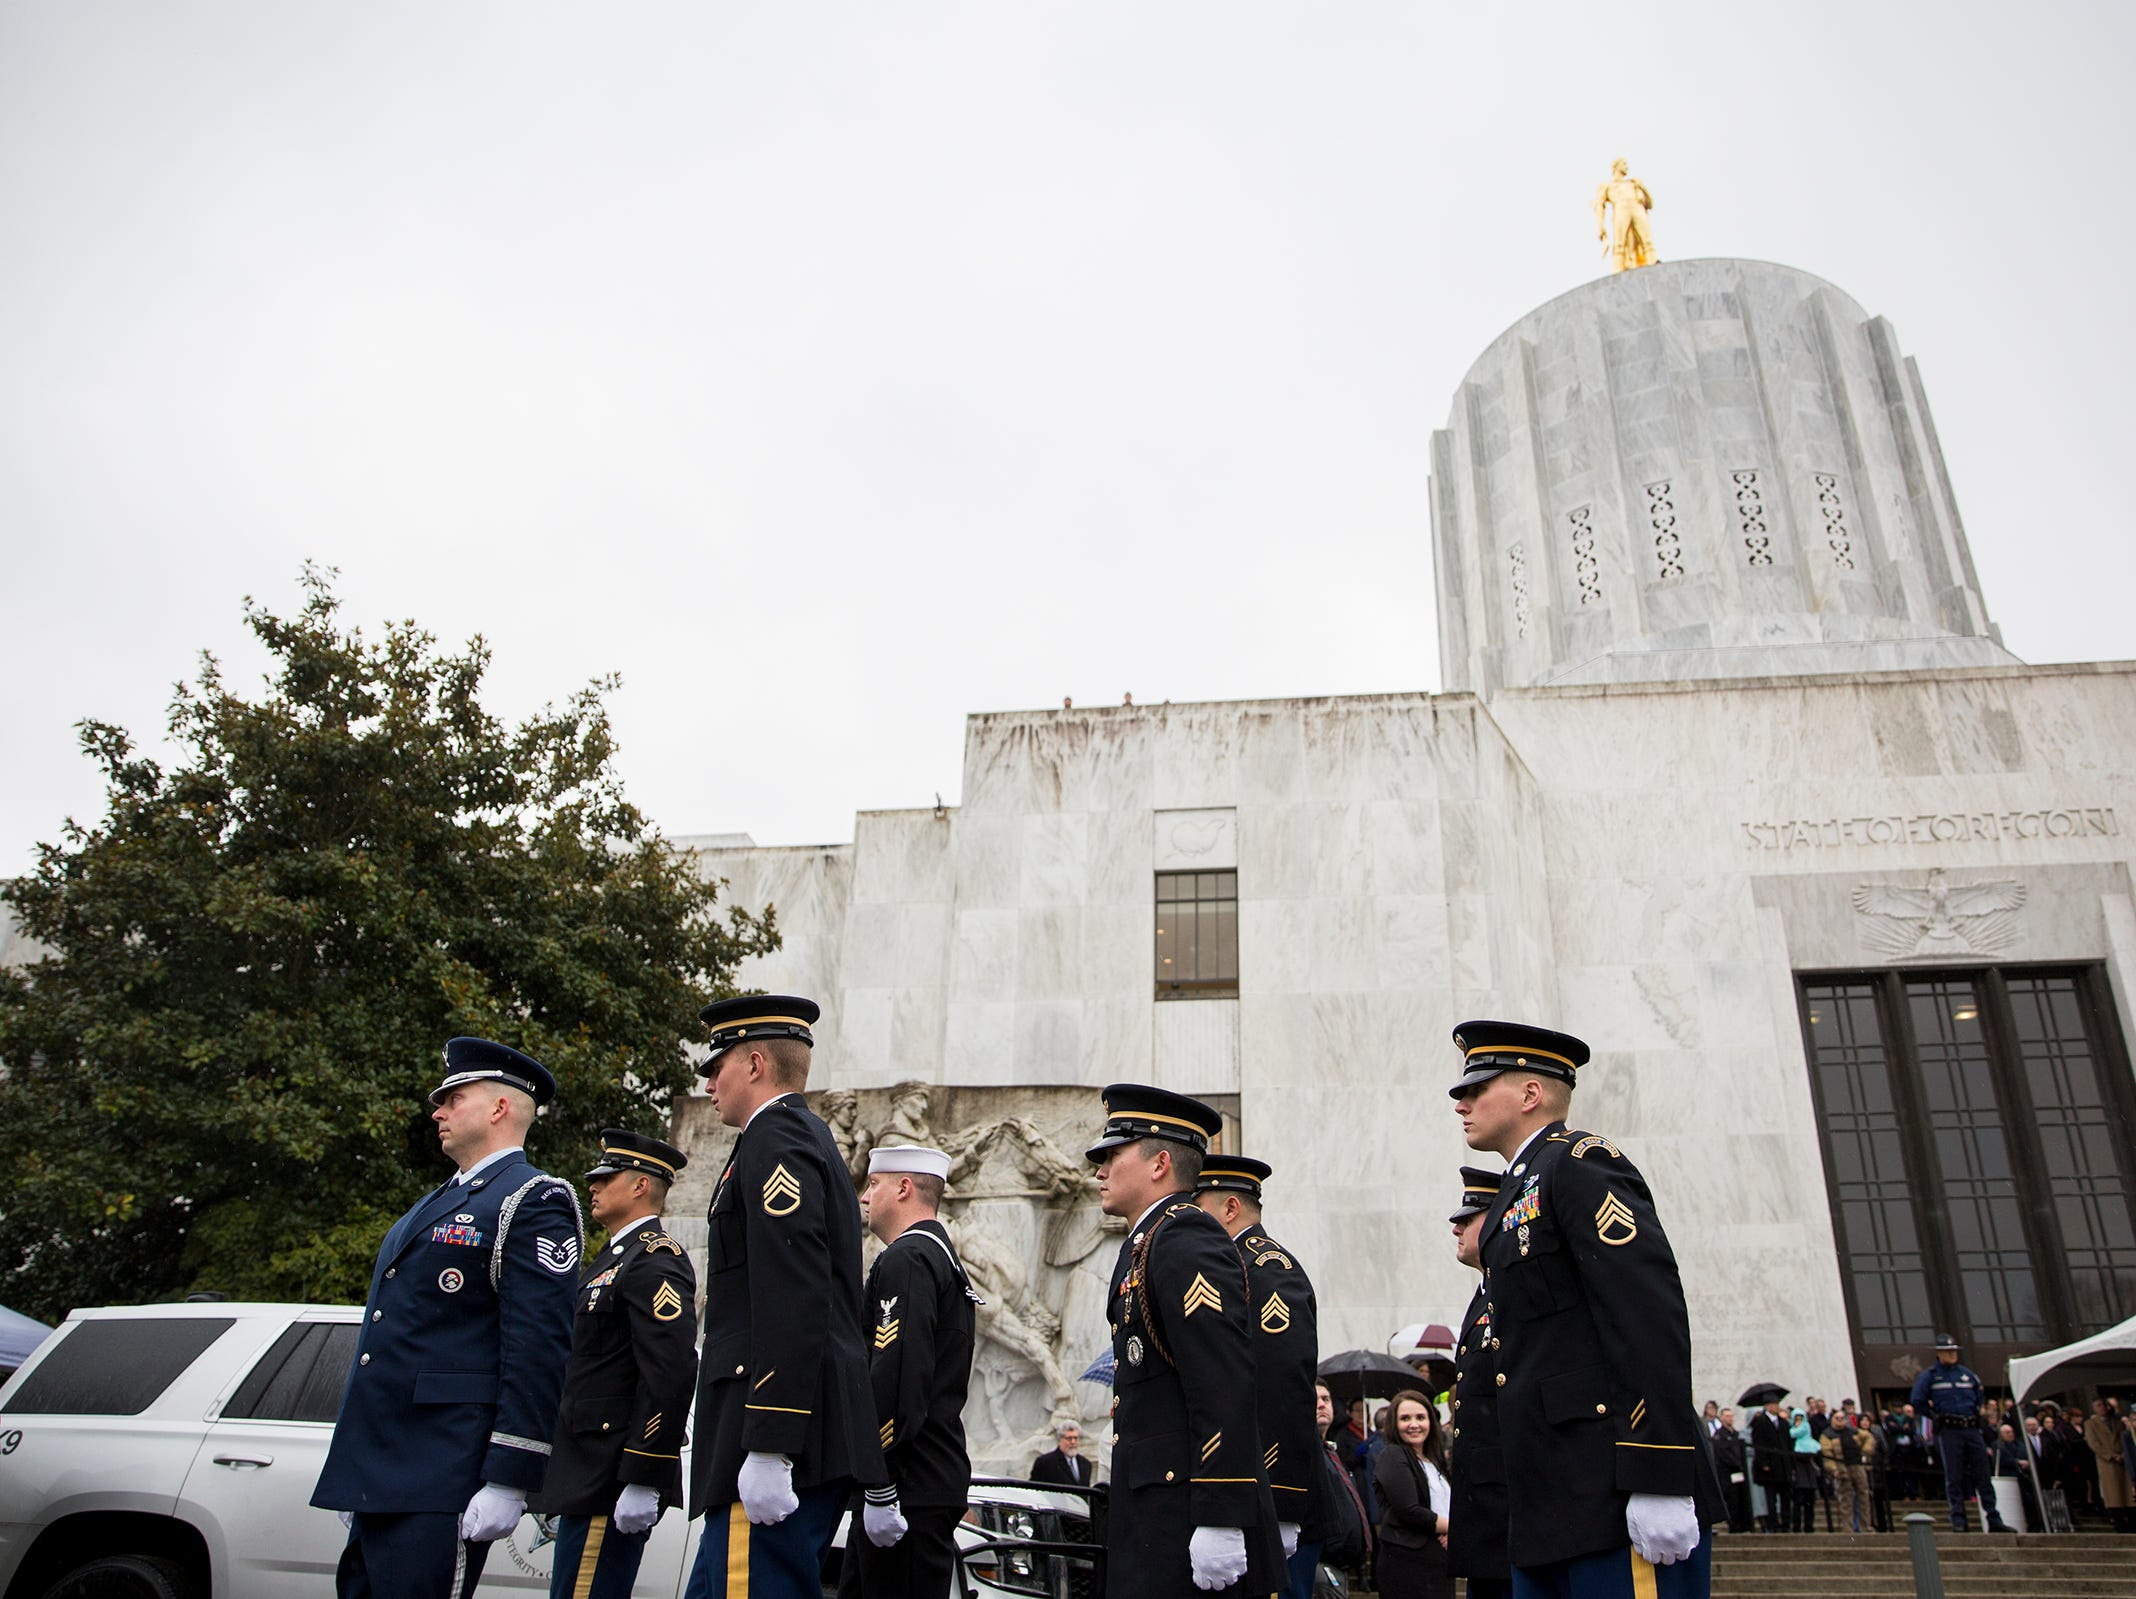 Military members finish placing the casket in the hearse following the state funeral for Secretary of State Dennis Richardson at the Oregon State Capitol in Salem on Wednesday, March 6, 2019.